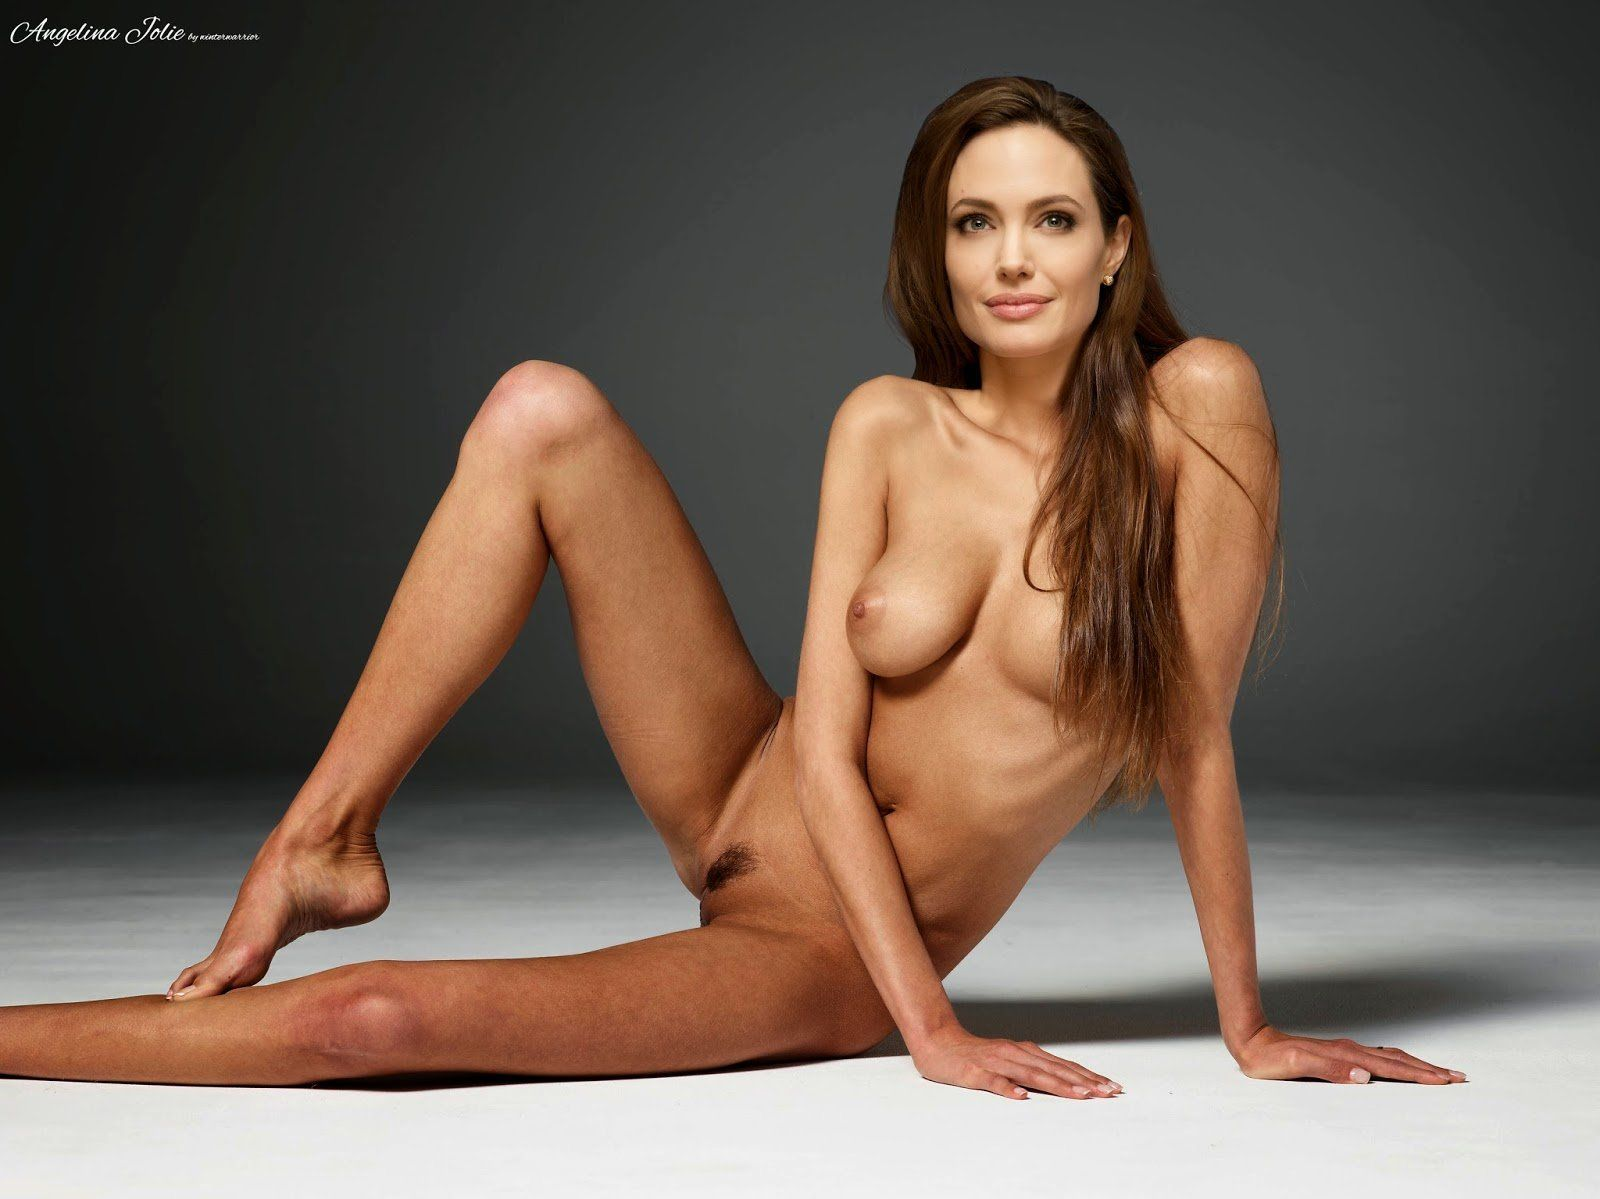 Angelina Jolie Naked Scene angelina jolie naked picture . porn pic. comments: 1